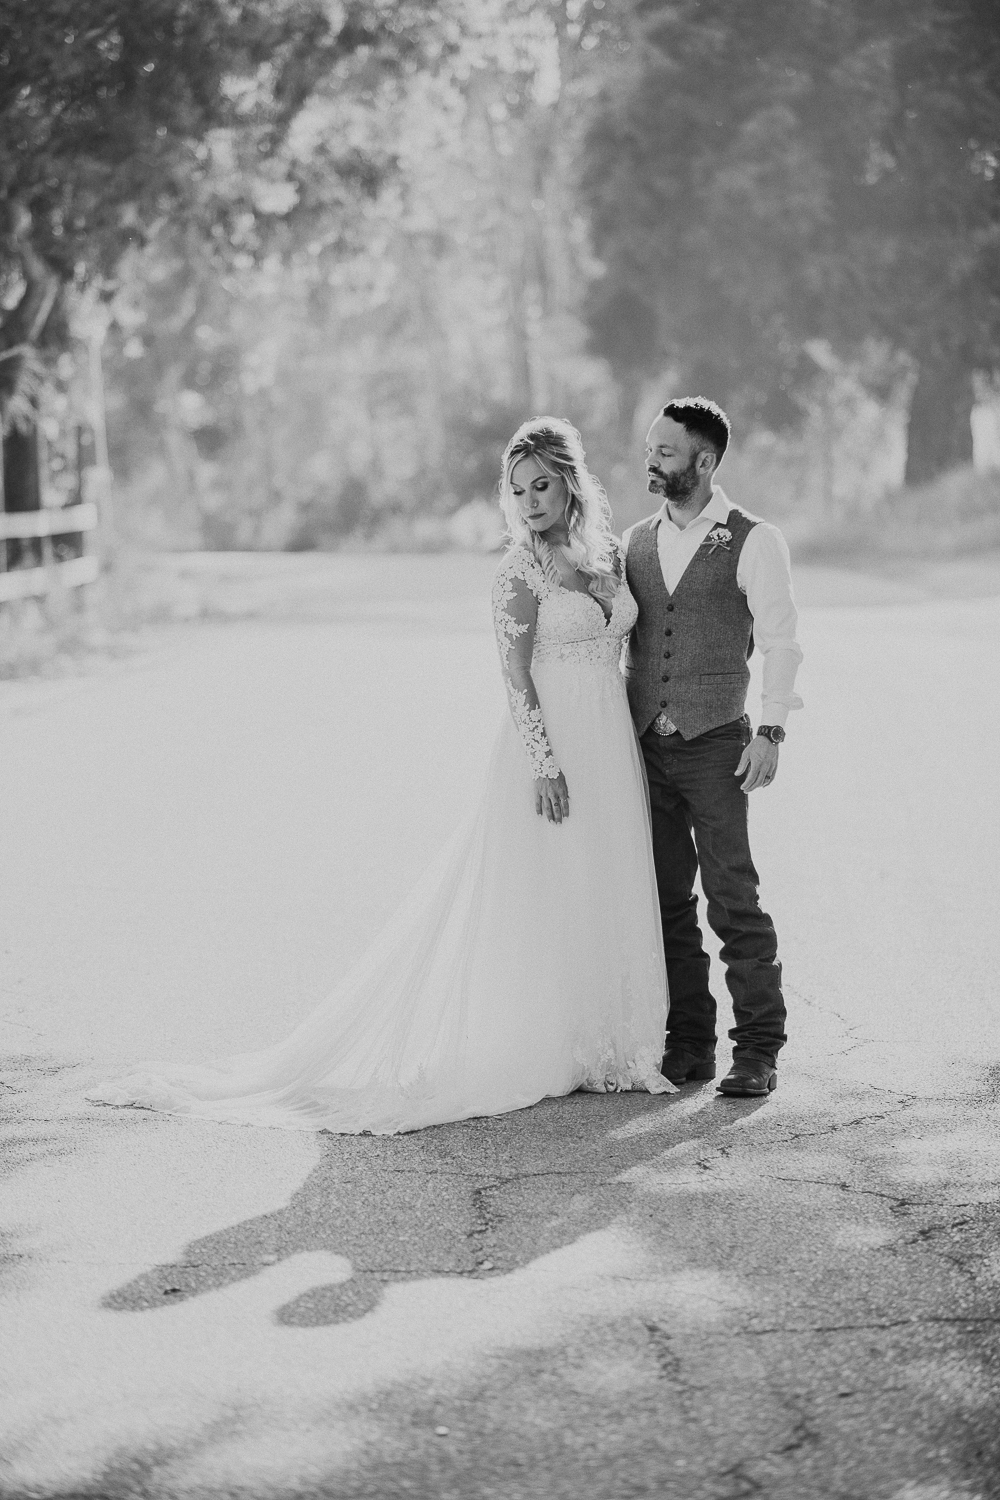 affordable-wedding-photography-losangeles24.jpg